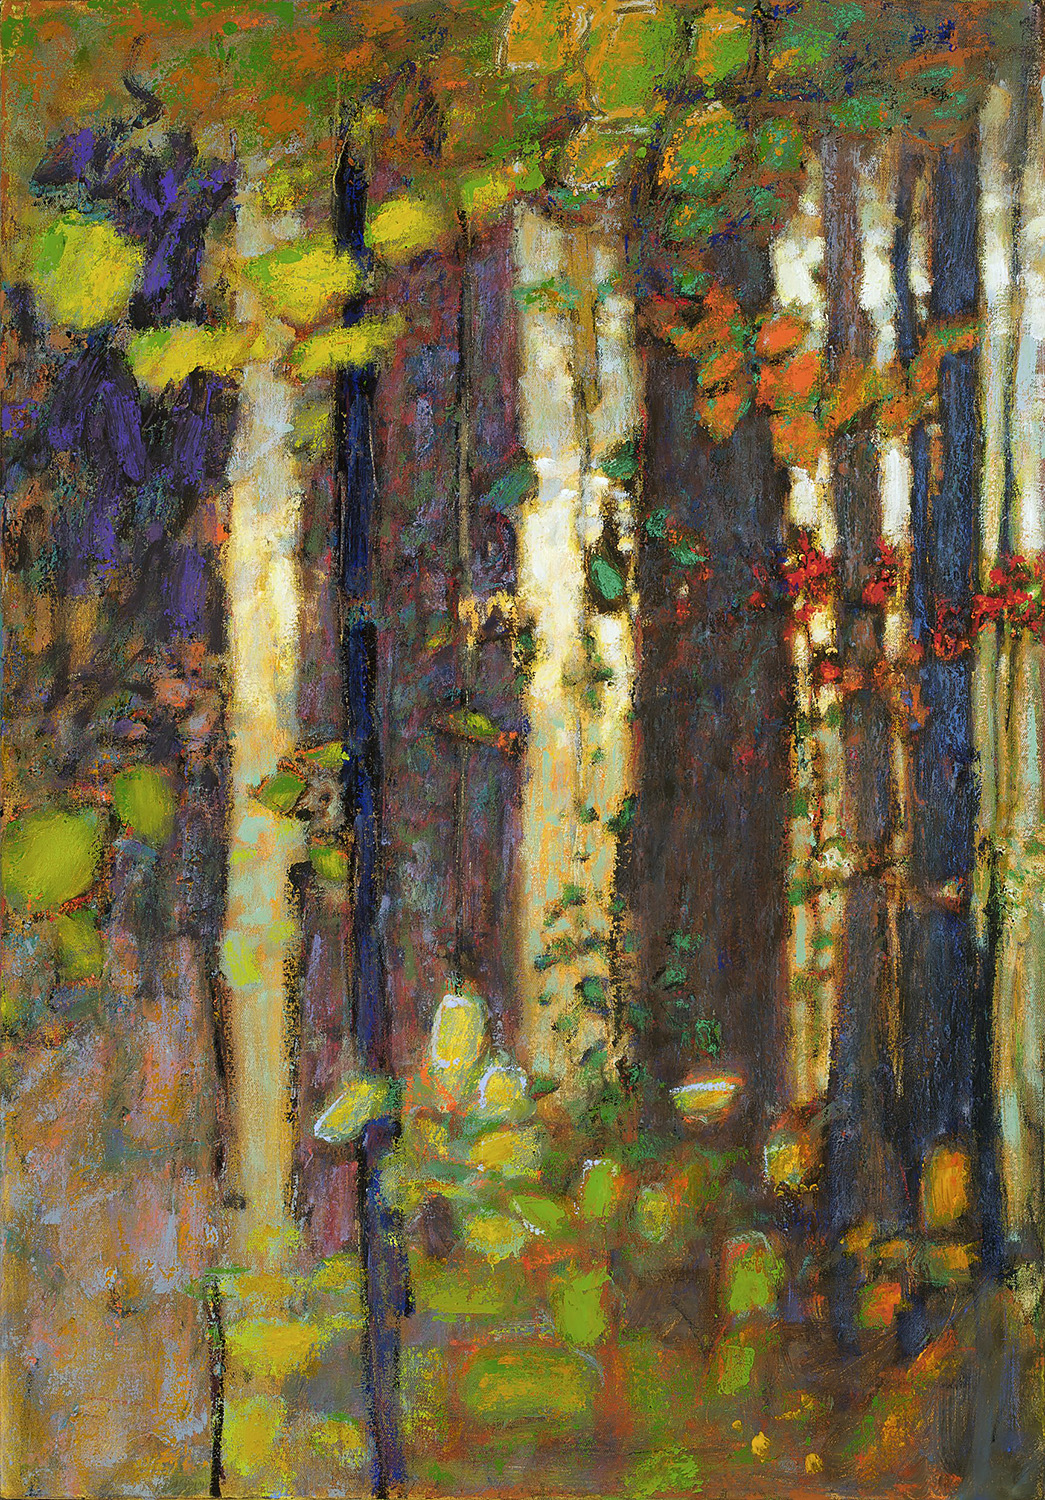 A Place in the Wilderness  | oil on canvas | 36 x 25"